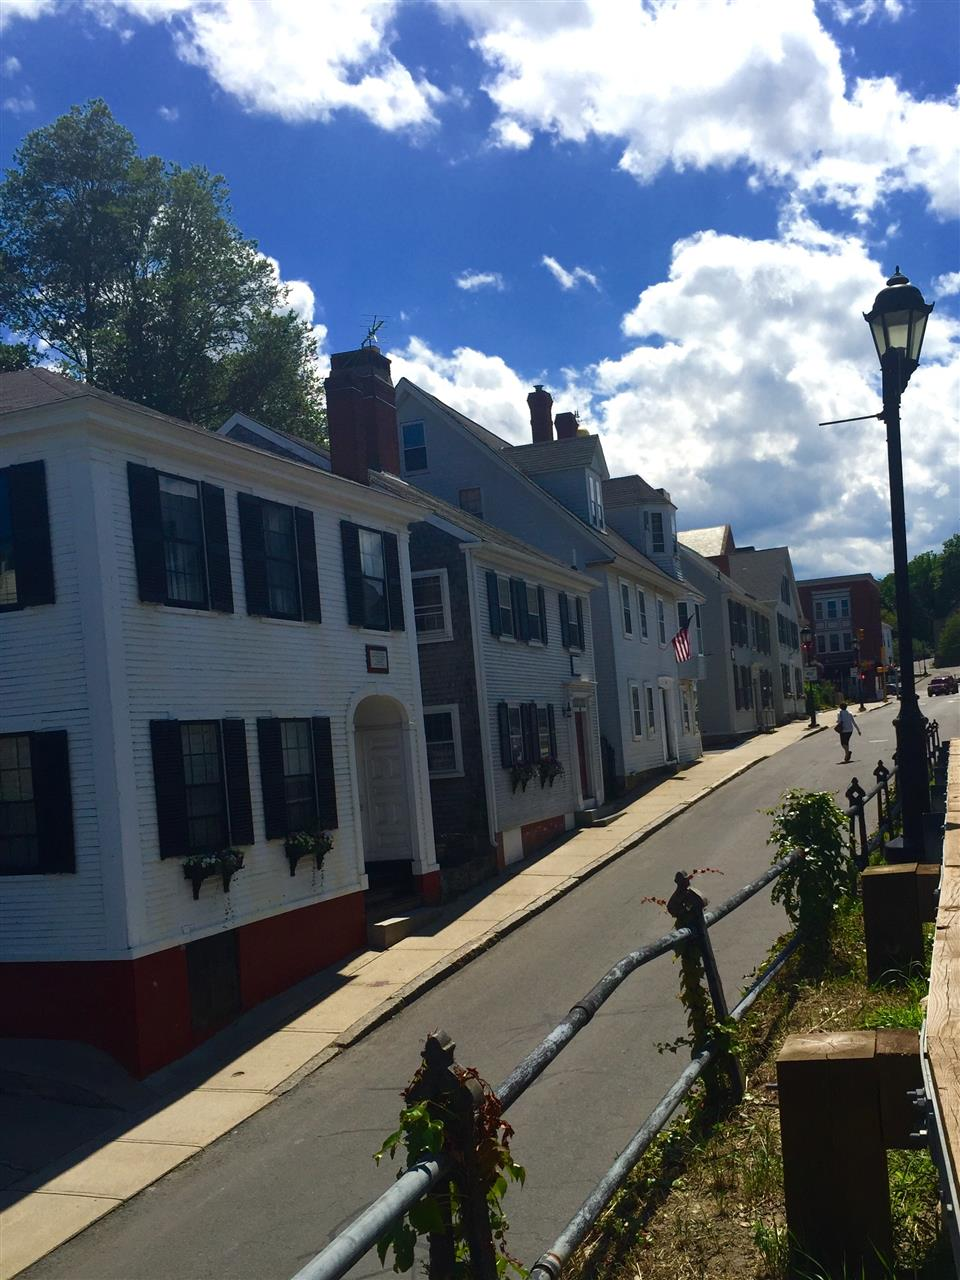 The First Street established in the United States photographed on the 4th of July. Leydon St, Plymouth, MA